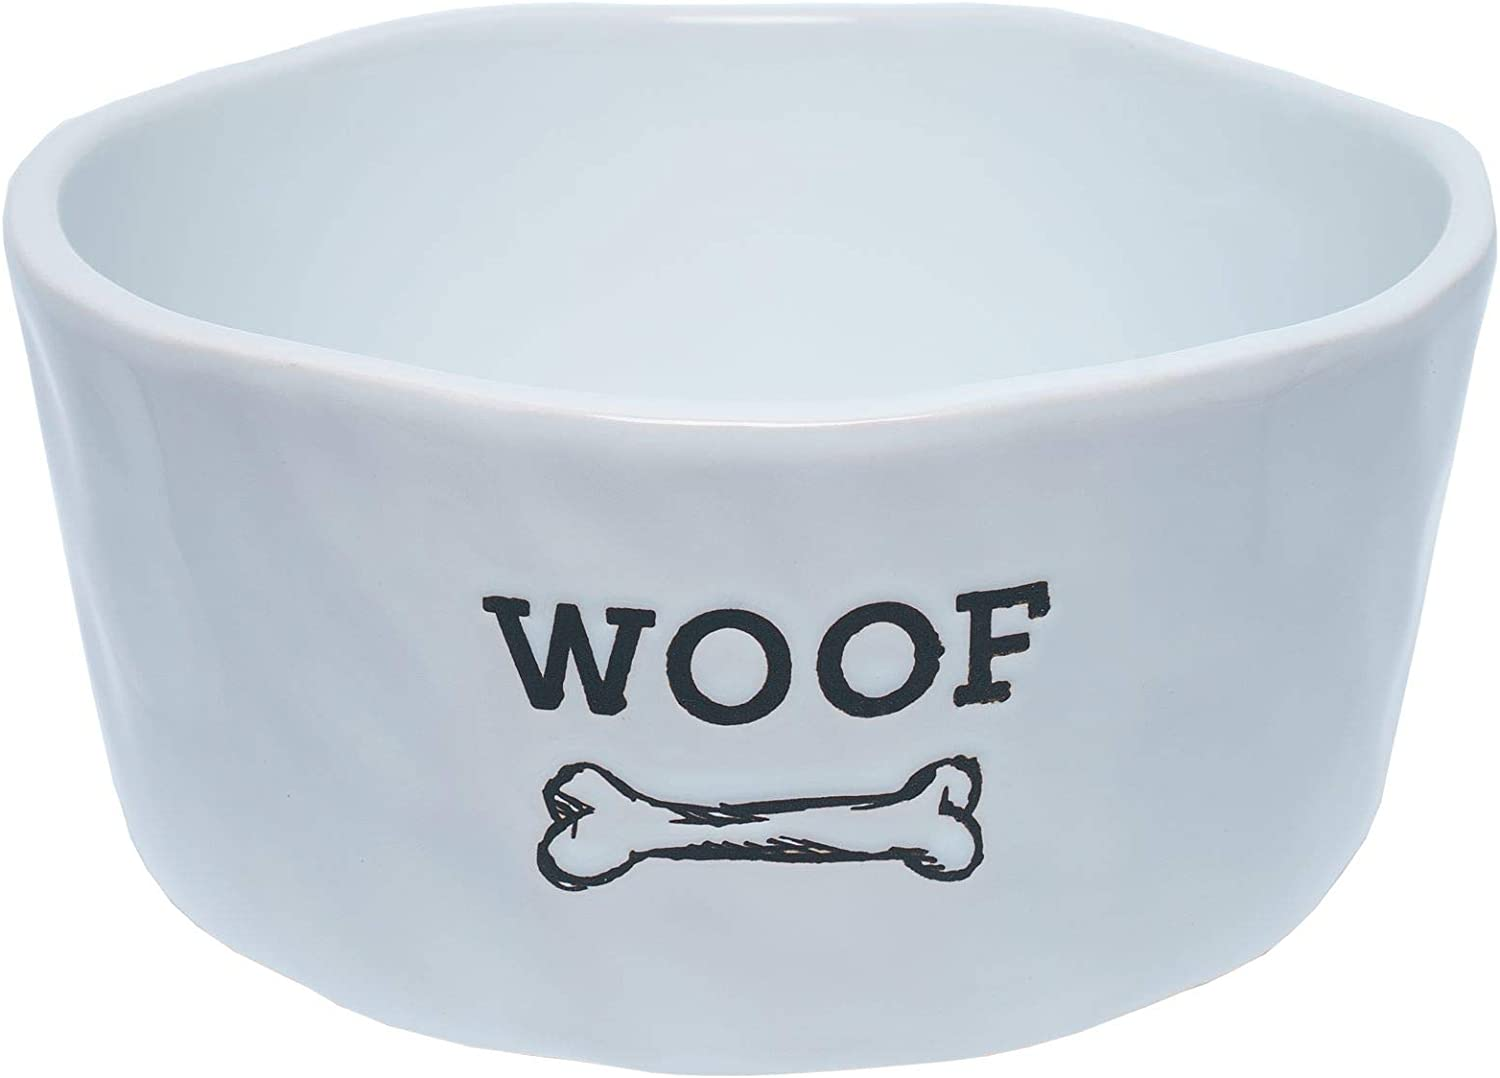 Dog Pet Ceramic Bowls and Durable Ceramic Food Bowls | Great for Wet Food, Dry Food, and Water